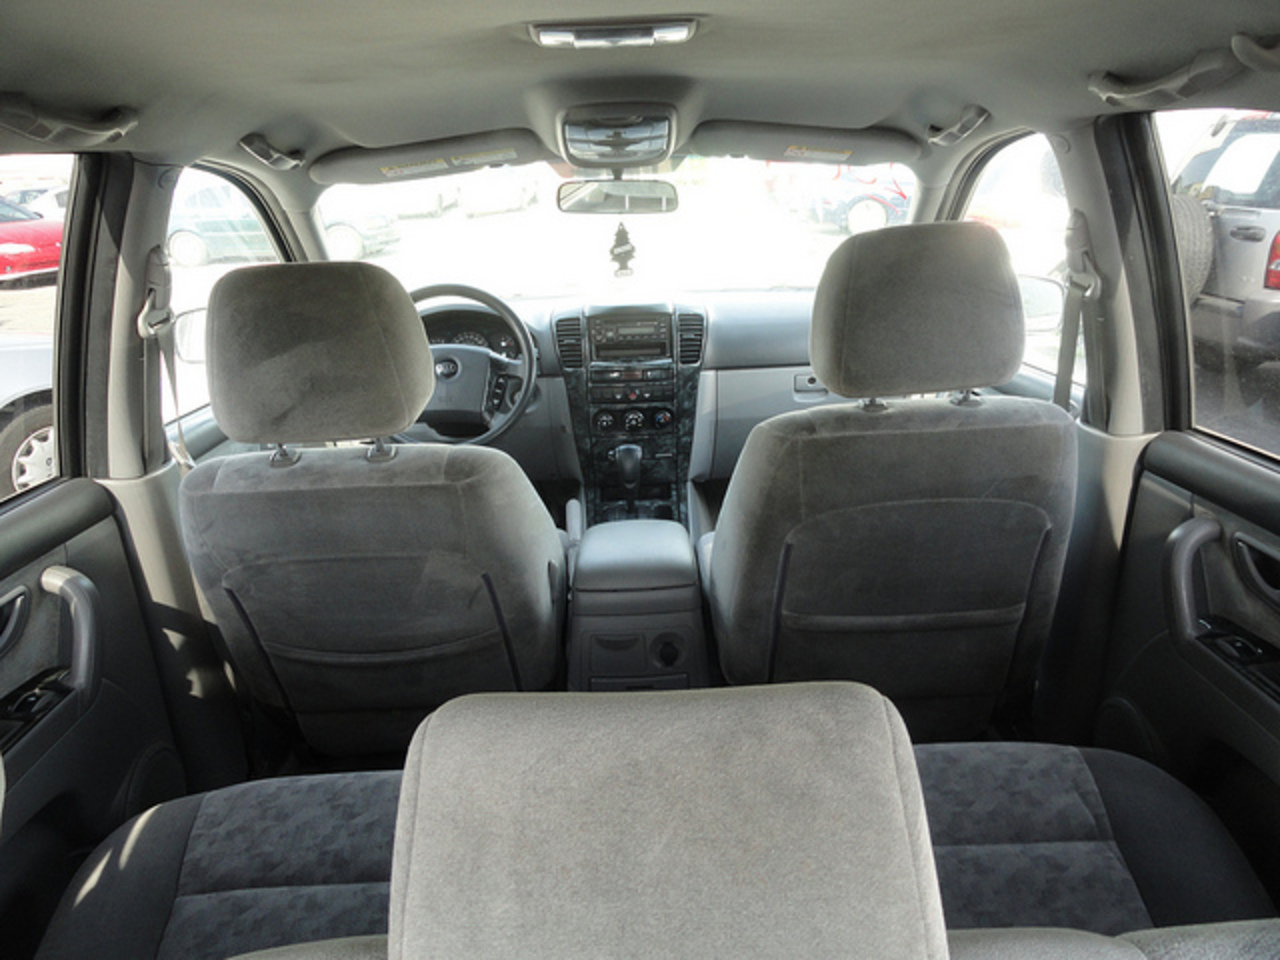 KIA Sorento LX Inside-Back | Flickr - Photo Sharing!